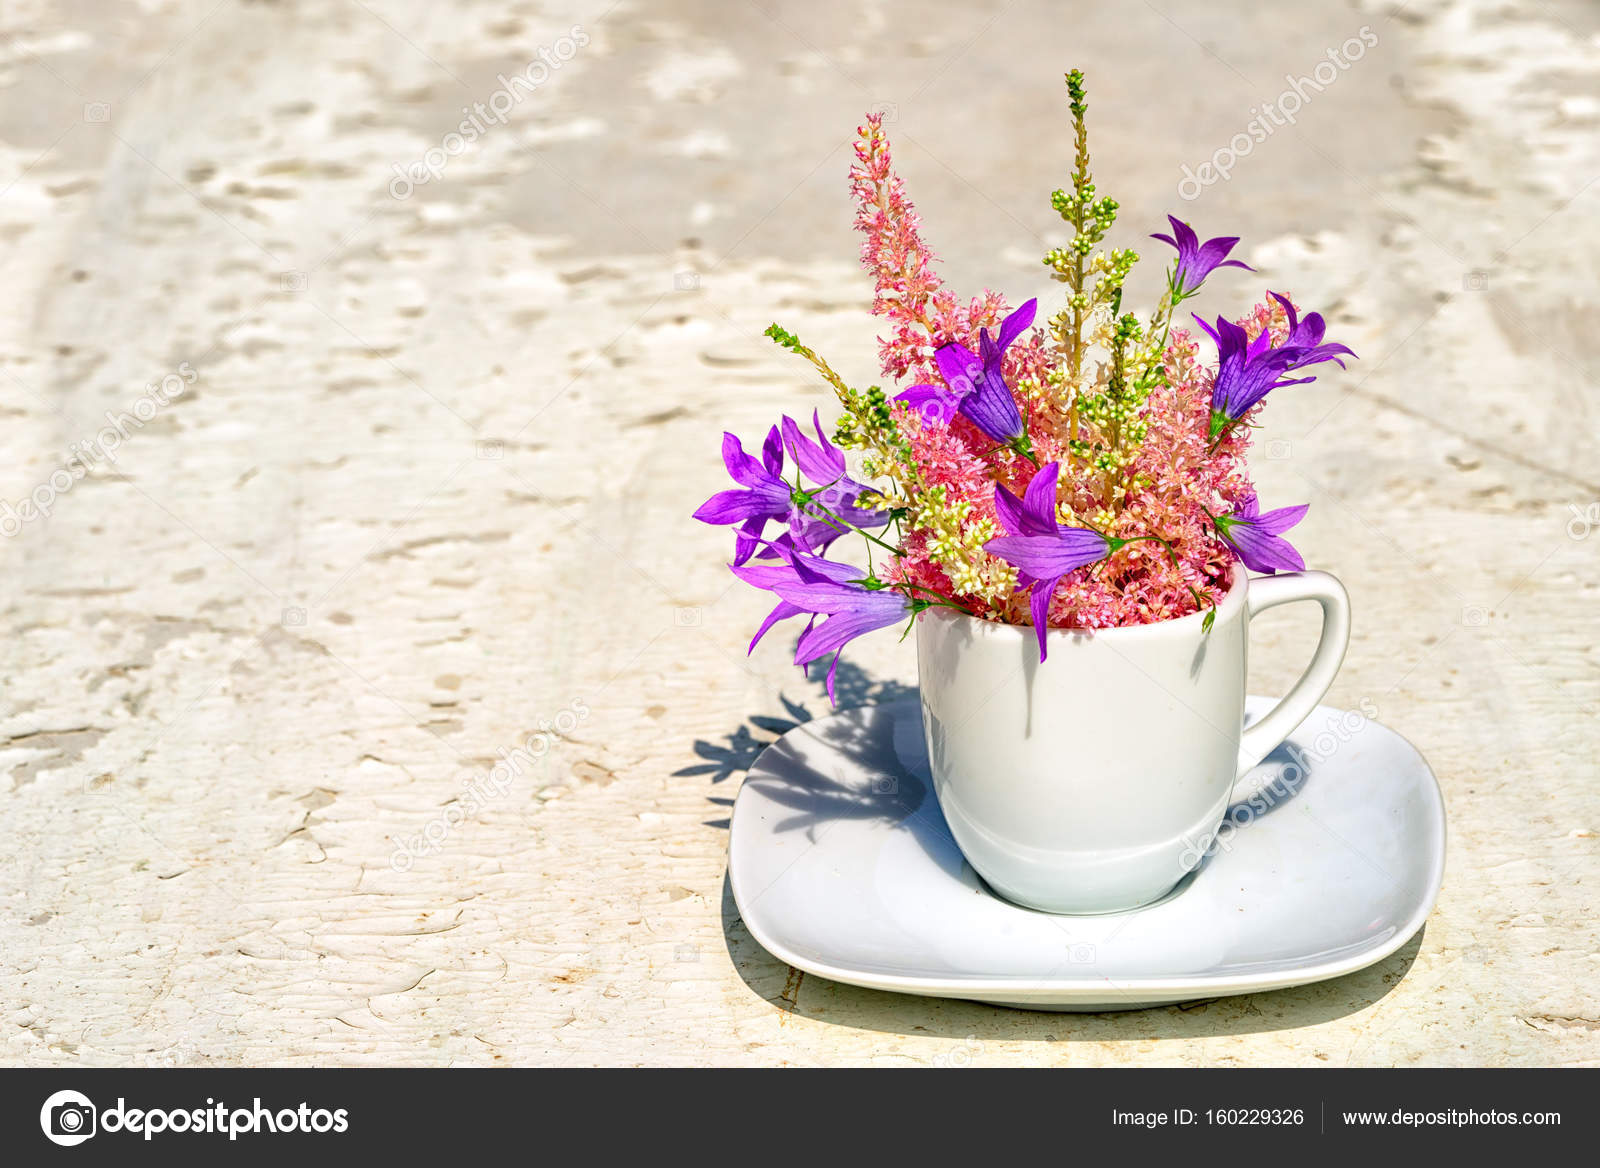 Astilba and blue bell flowers bouquet in a white coffee cup on an astilba and blue bell flowers bouquet in a white coffee cup on an old white background with copy space for your text photo by elf11 mightylinksfo Gallery